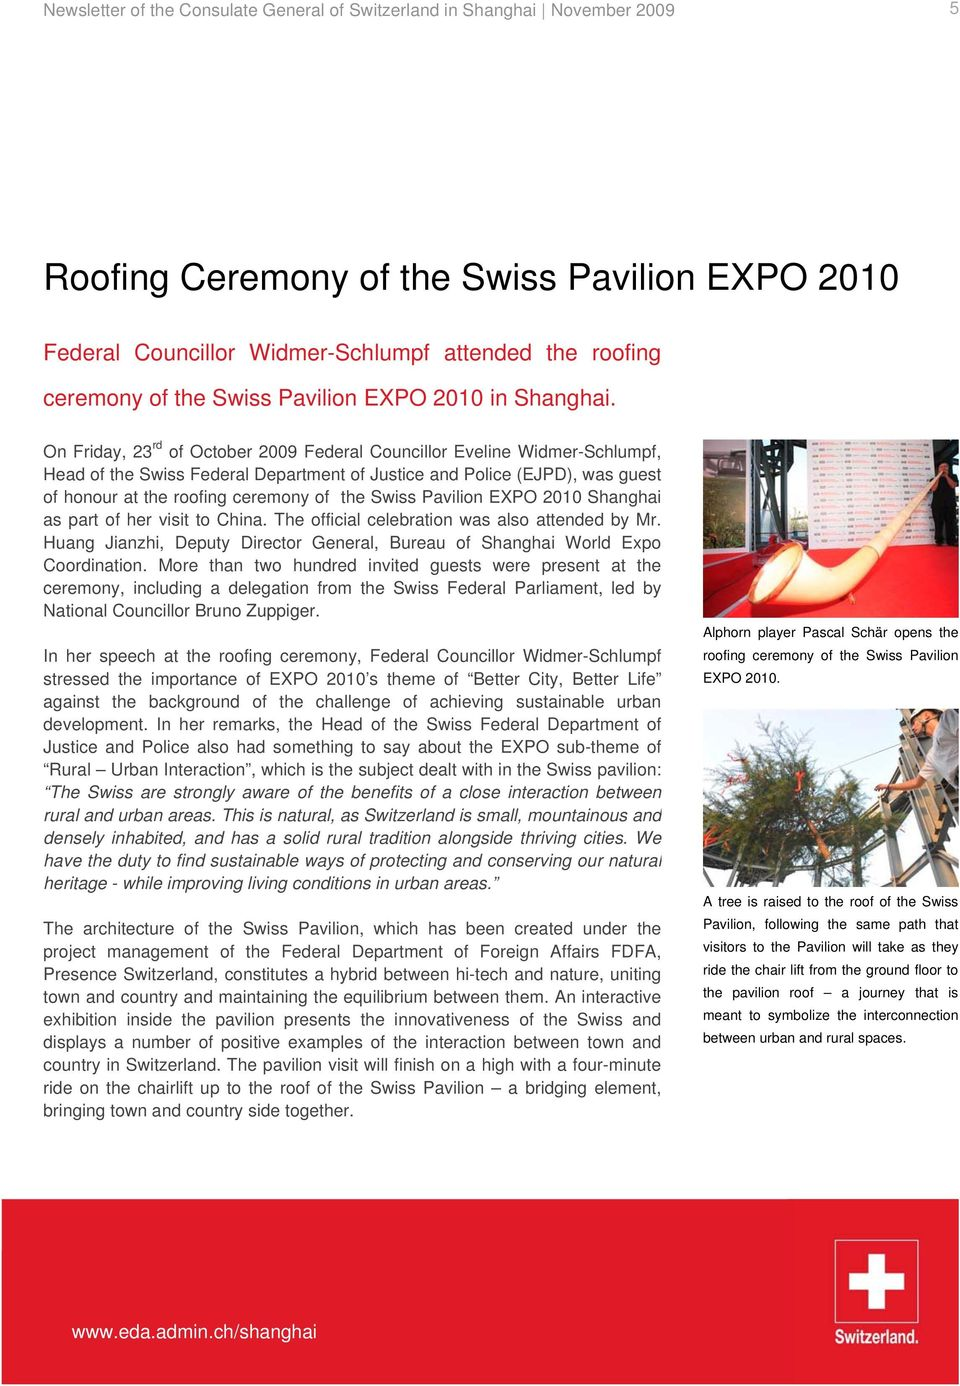 On Friday, 23 rd of October 2009 Federal Councillor Eveline Widmer-Schlumpf, Head of the Swiss Federal Department of Justice and Police (EJPD), was guest of honour at the roofing ceremony of the